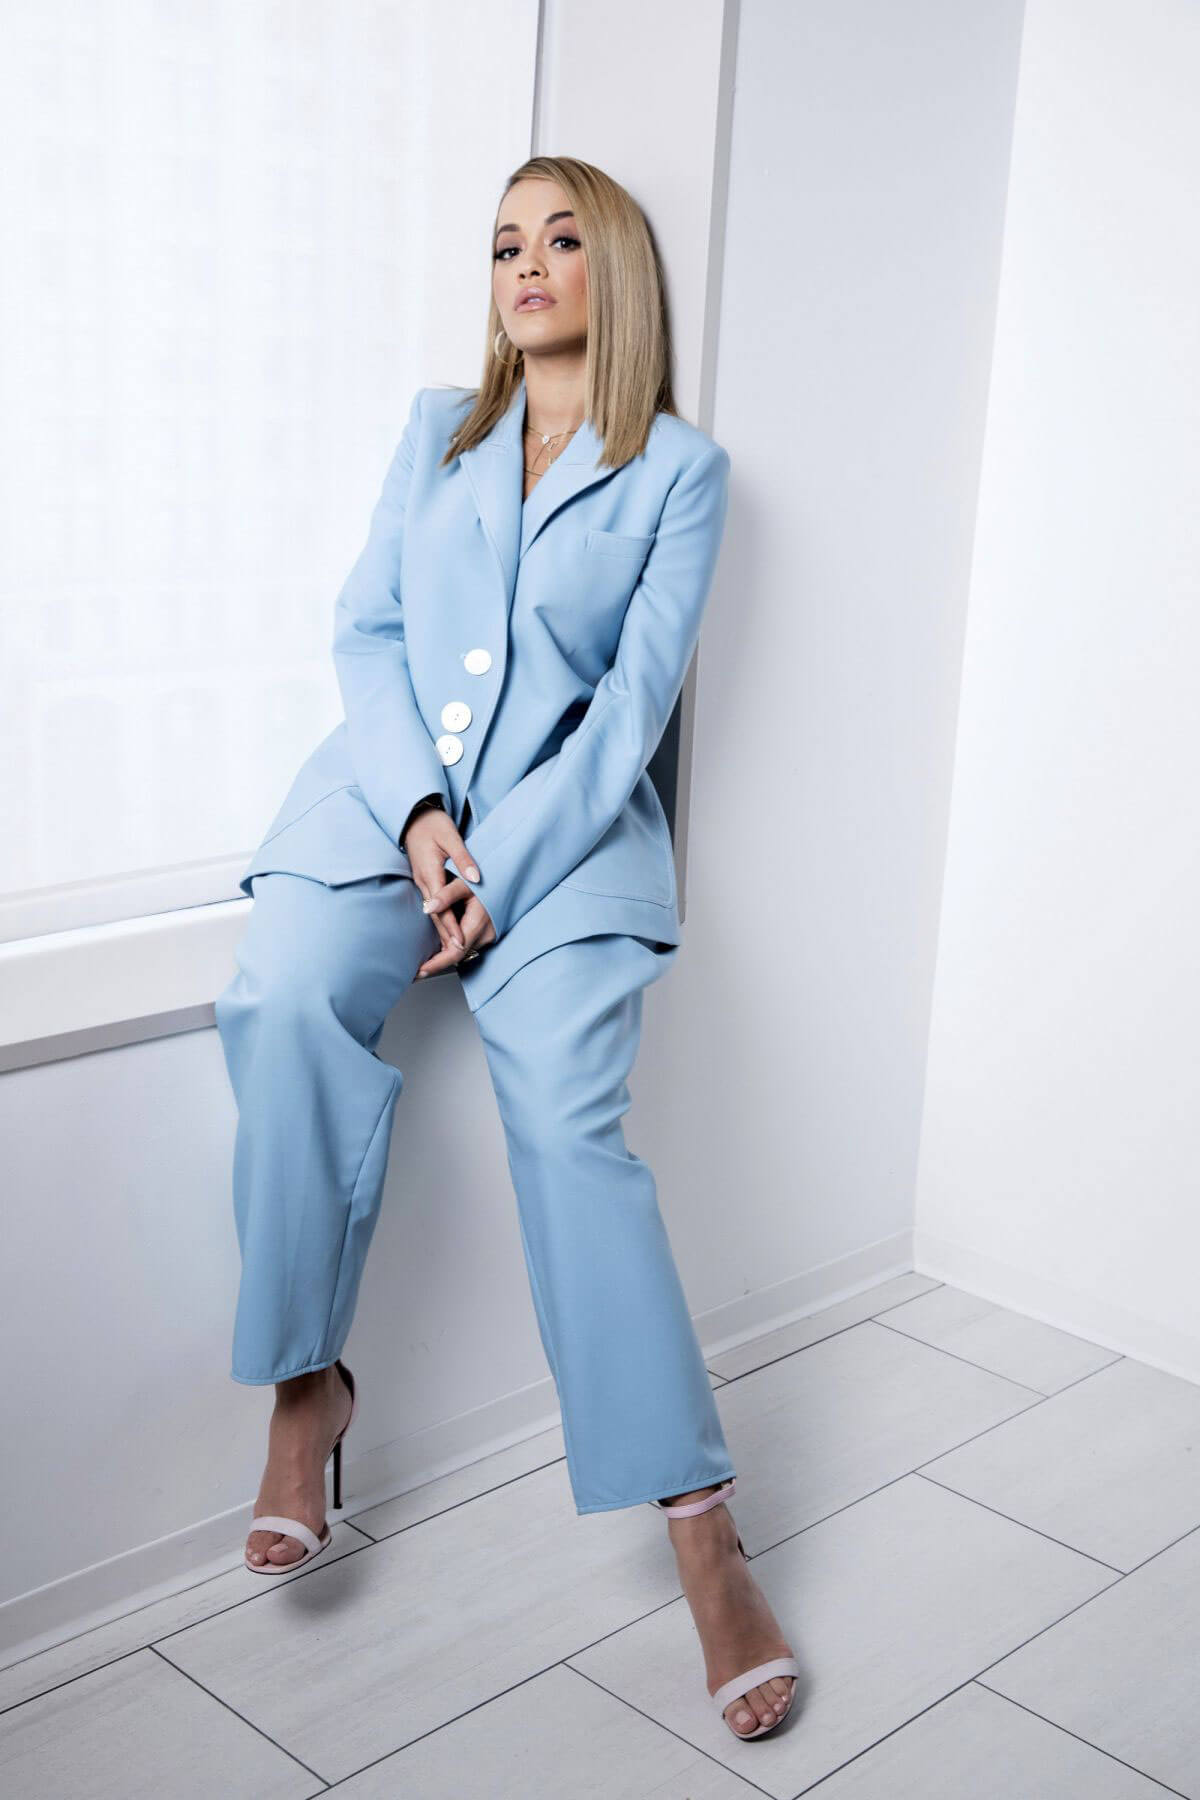 Rita Ora Poses in Sky Blue Suit by Amy Sussman, 2017 Photos